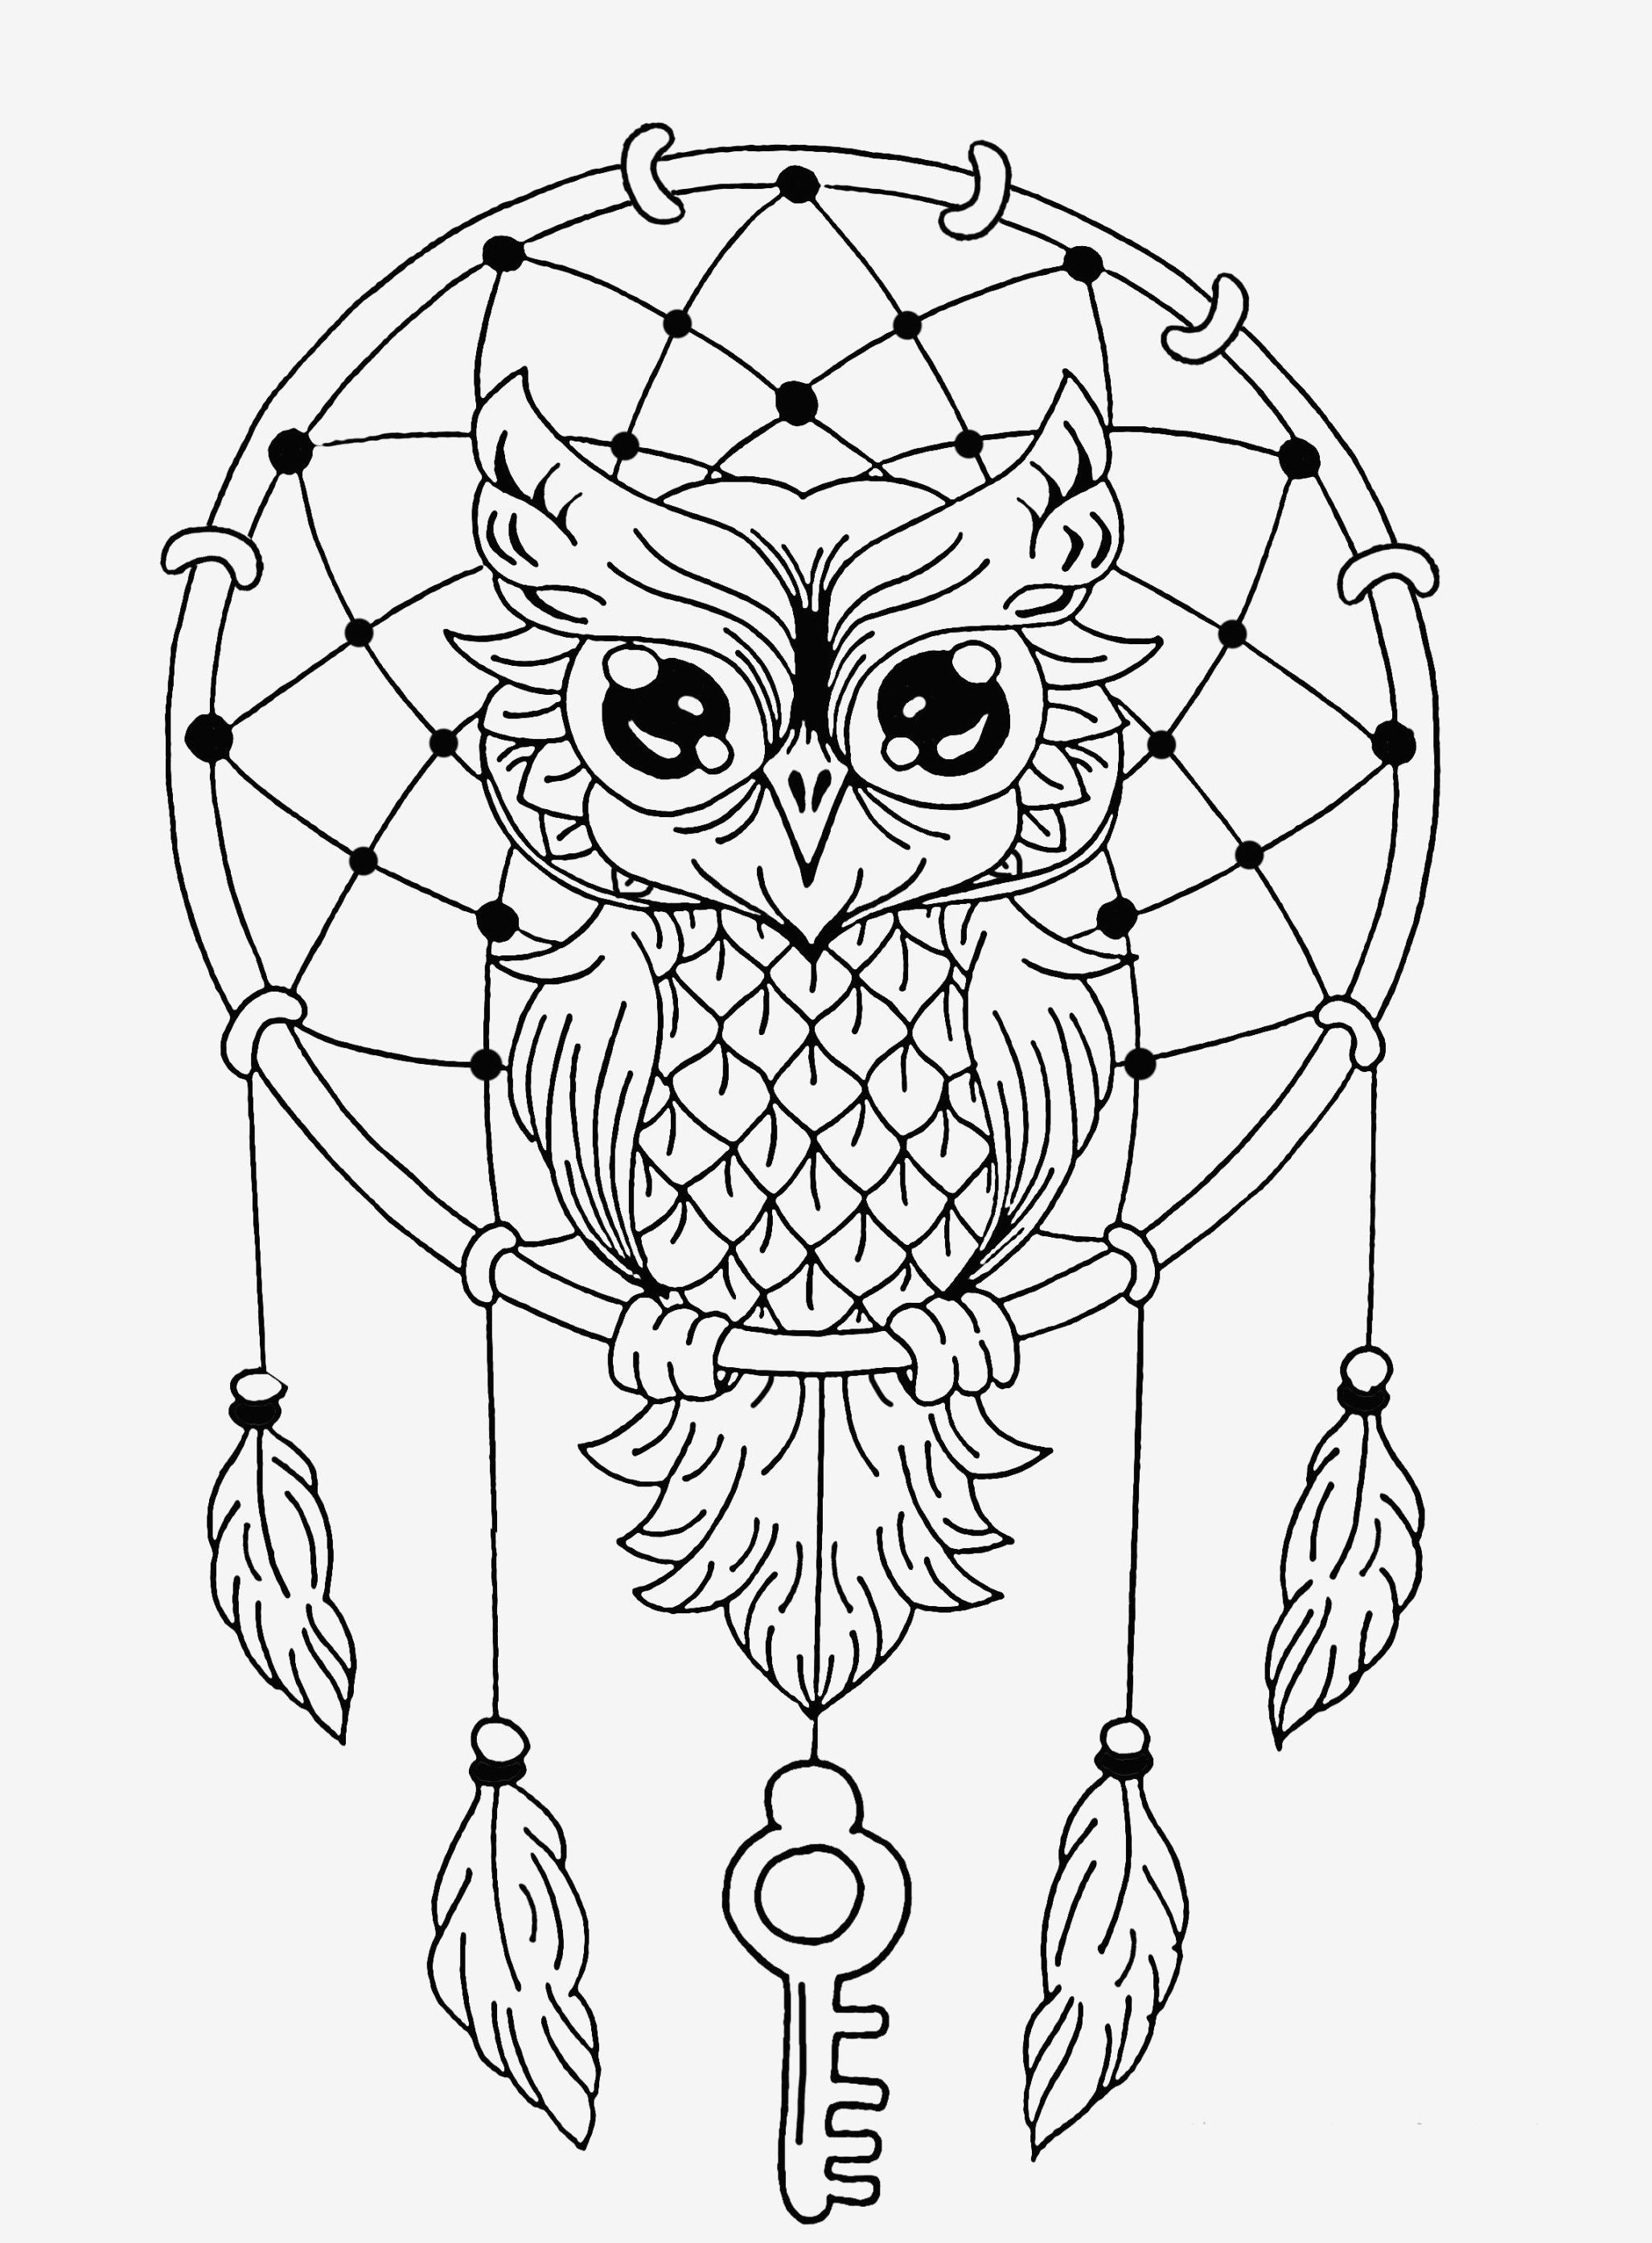 Animal mandala coloring pages printable from the thousands of photographs on the internet in relation to animal mandala coloring pages printable picks